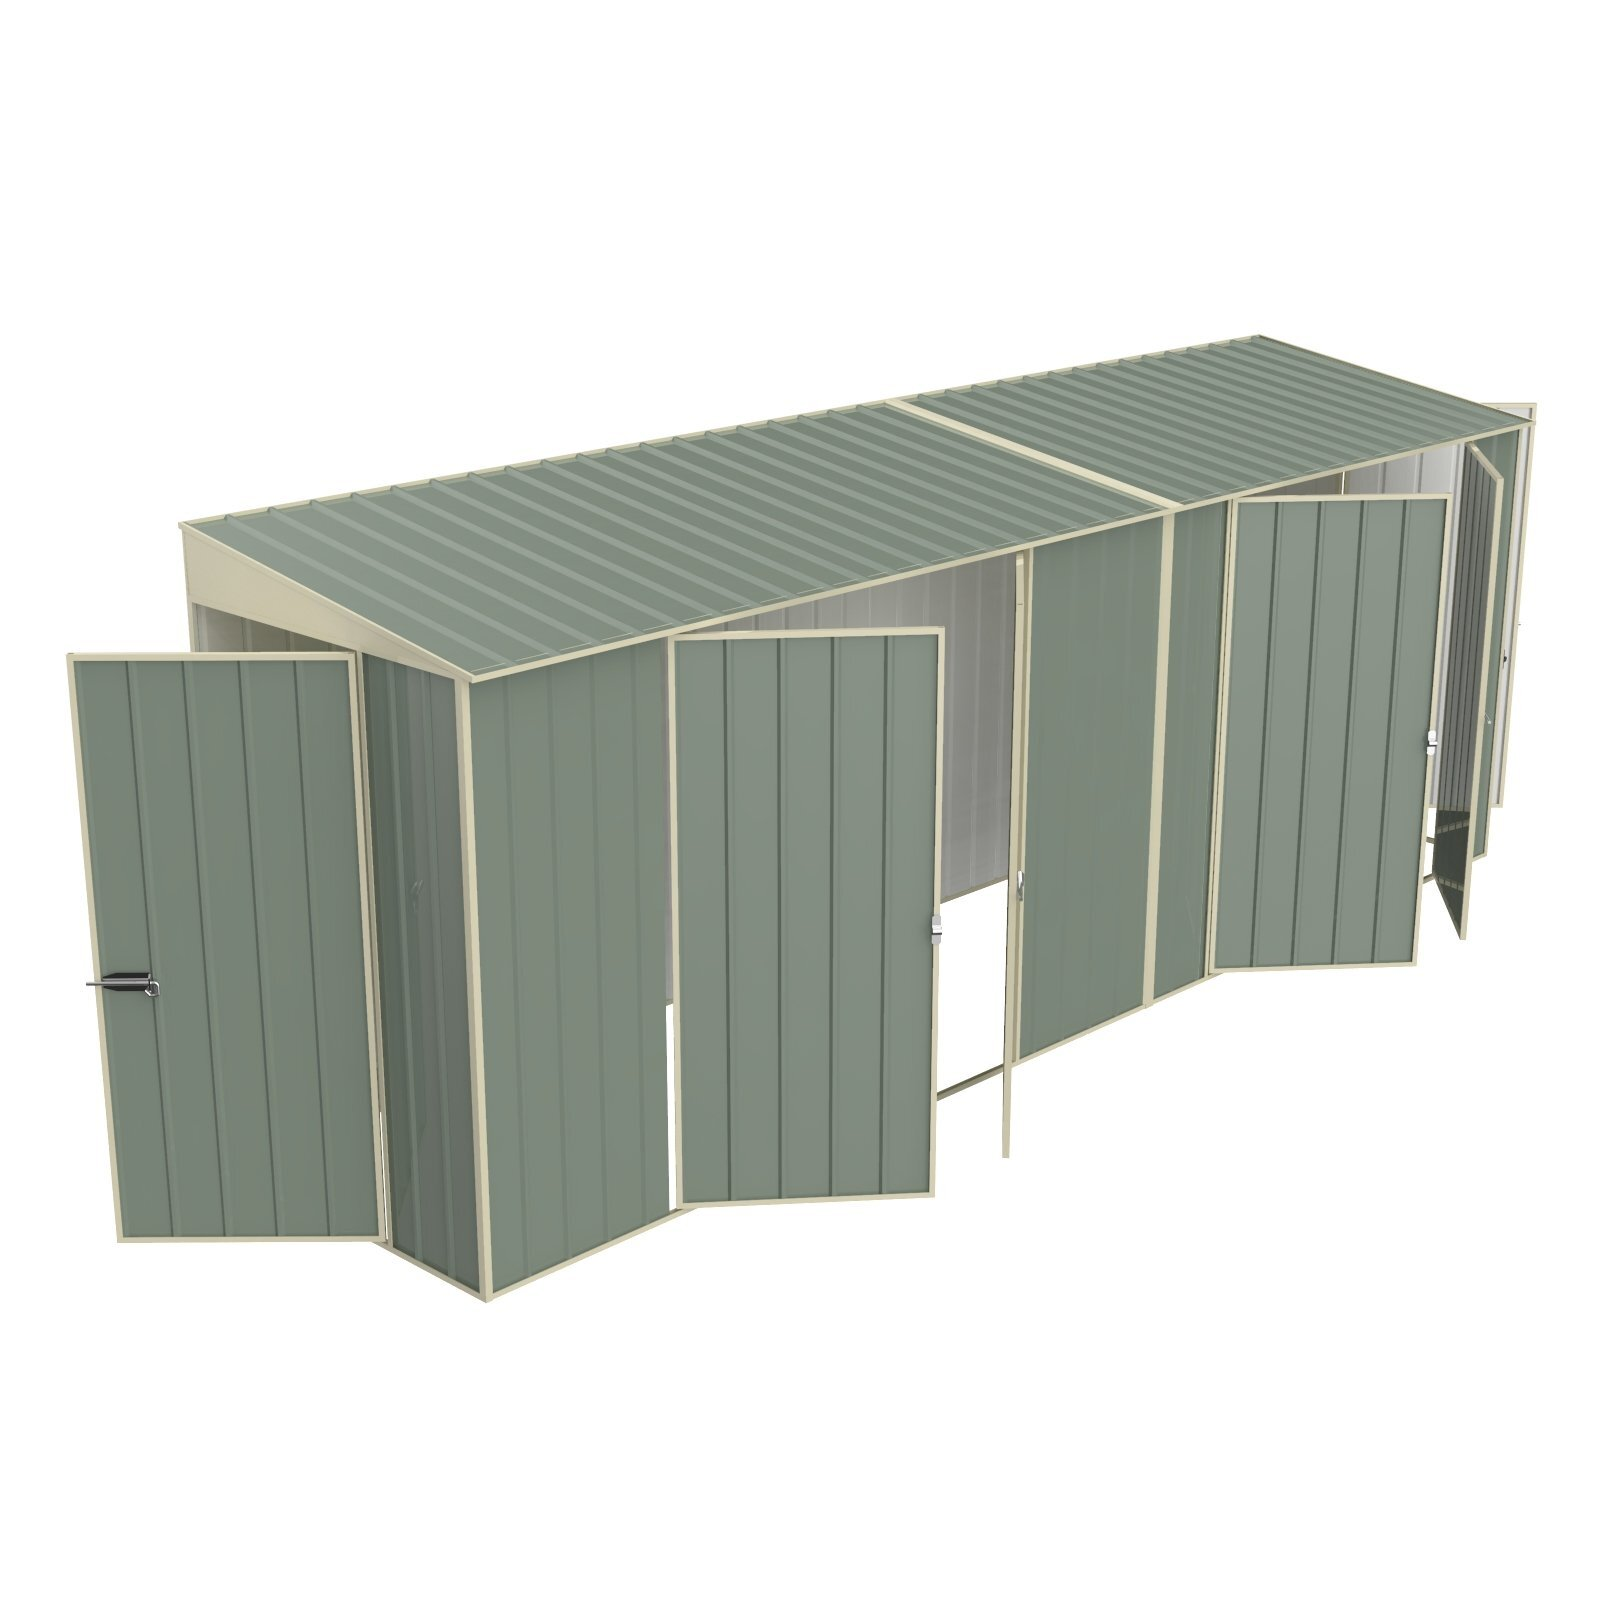 Build-a-Shed 1.2 x 5.2 x 2.0m Tunnel Shed Tunnel Hinged Door Plus Dual Double Hinged Side Doors - Green